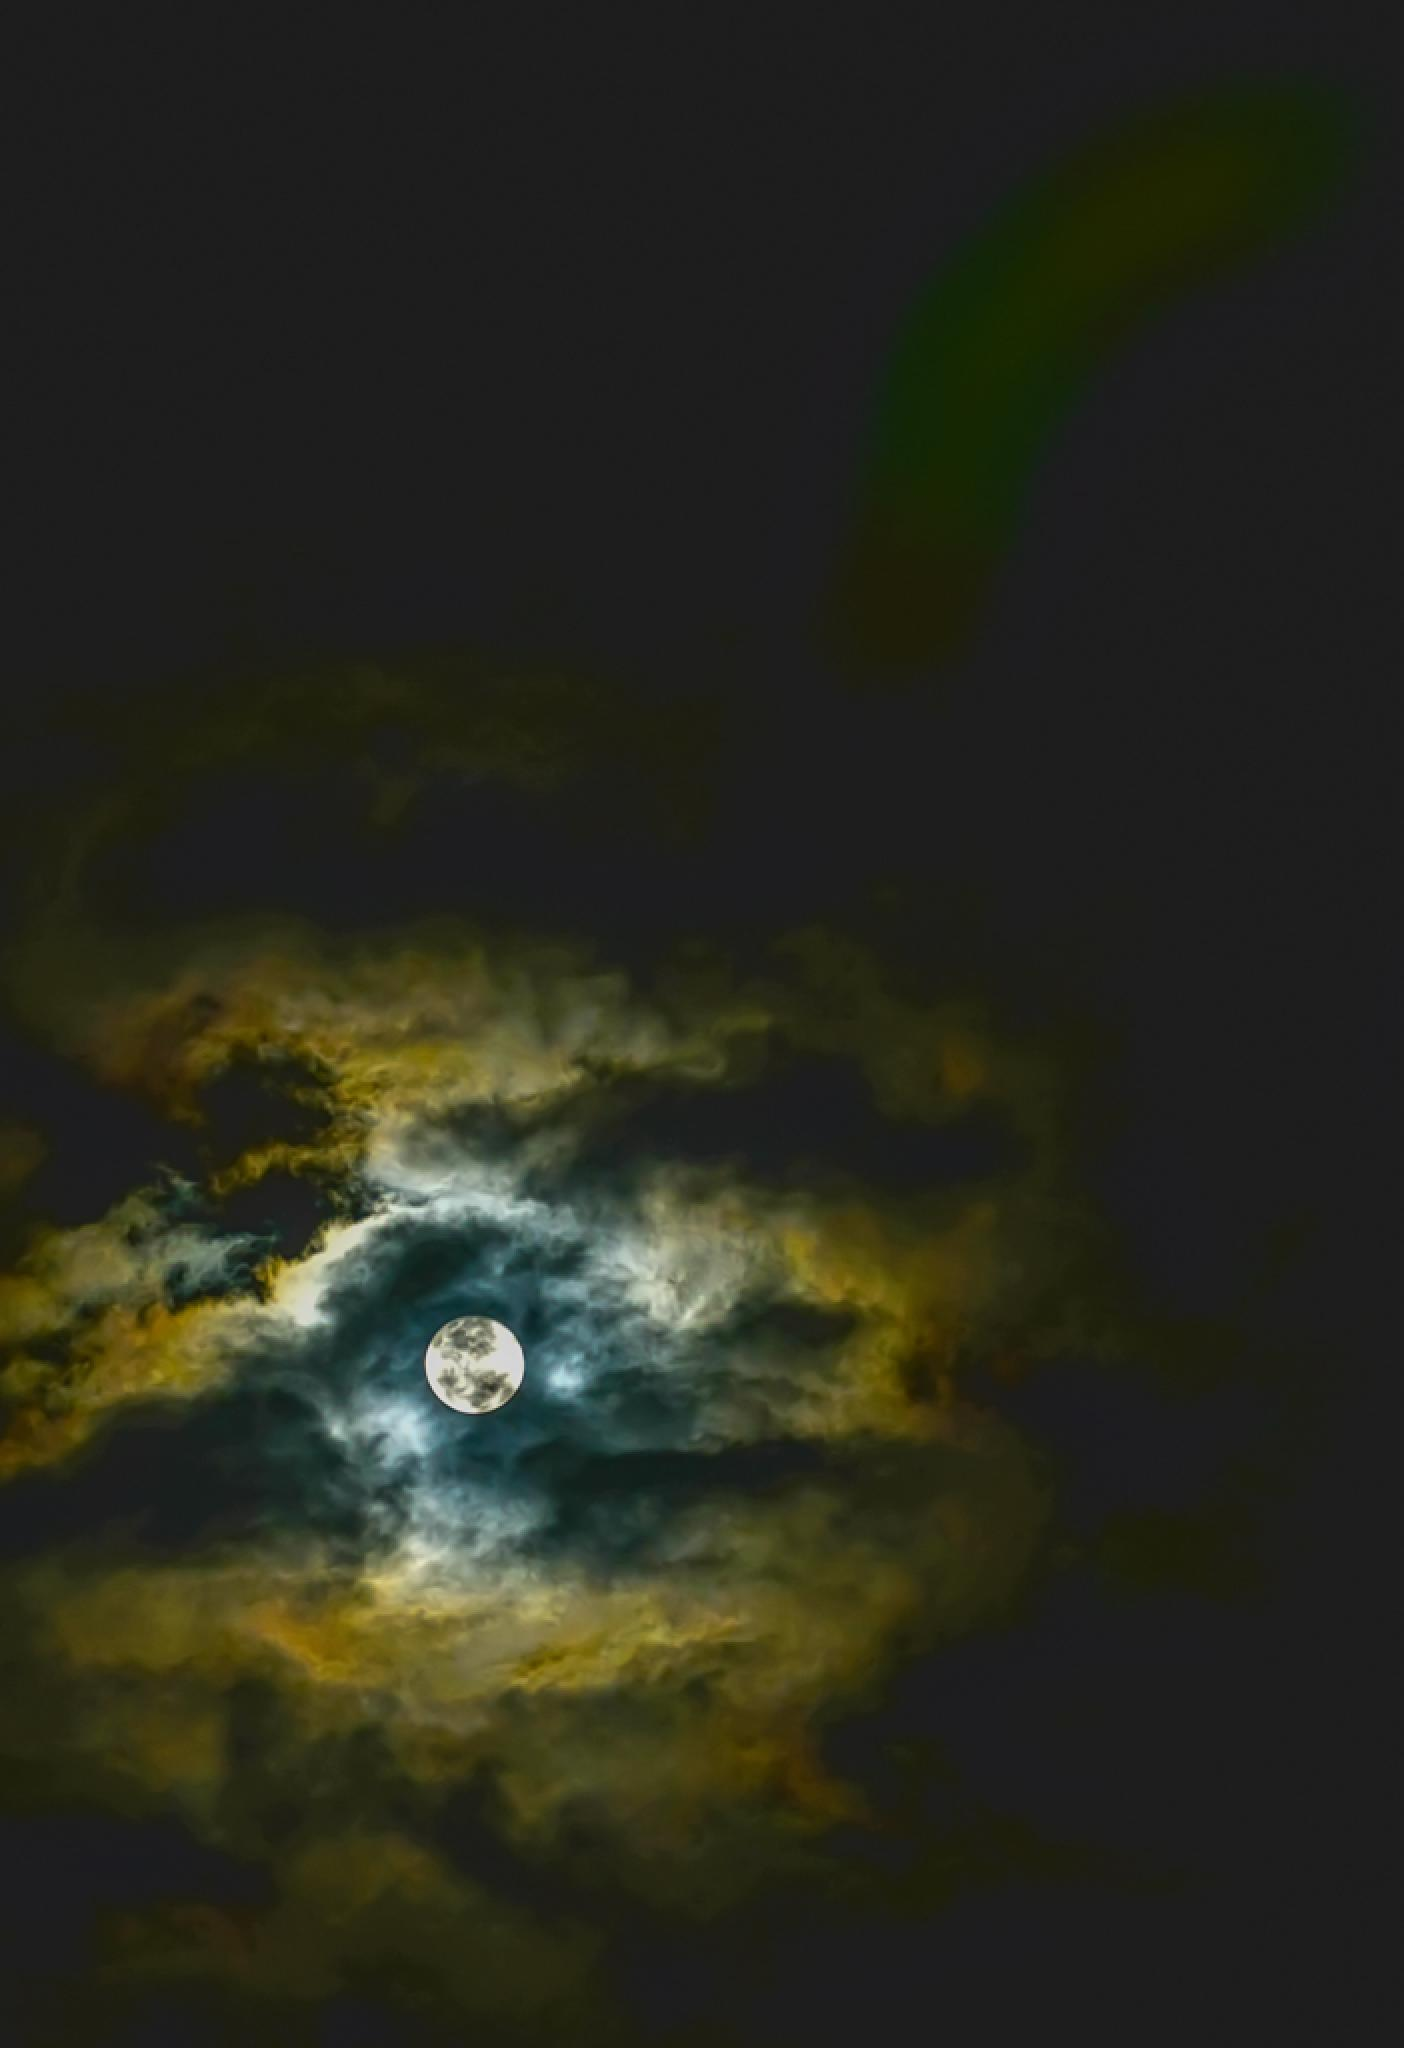 Amidst the clouds   ..... the full moon by desire.lilyman